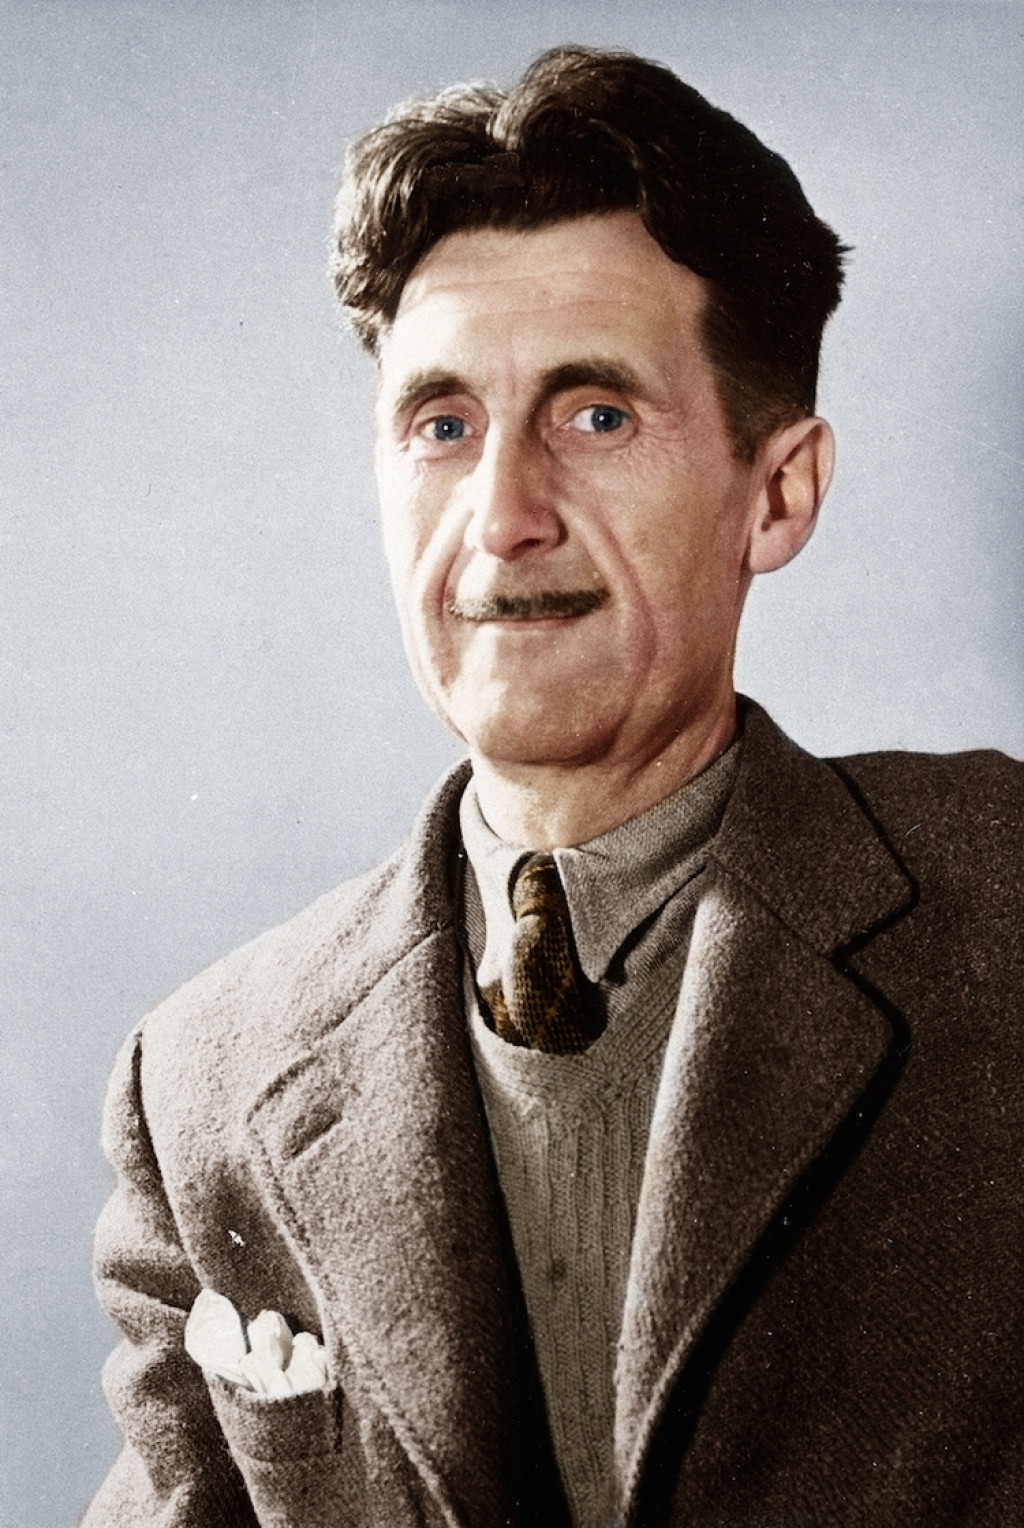 Summary and Analysis of George Orwell's A Hanging